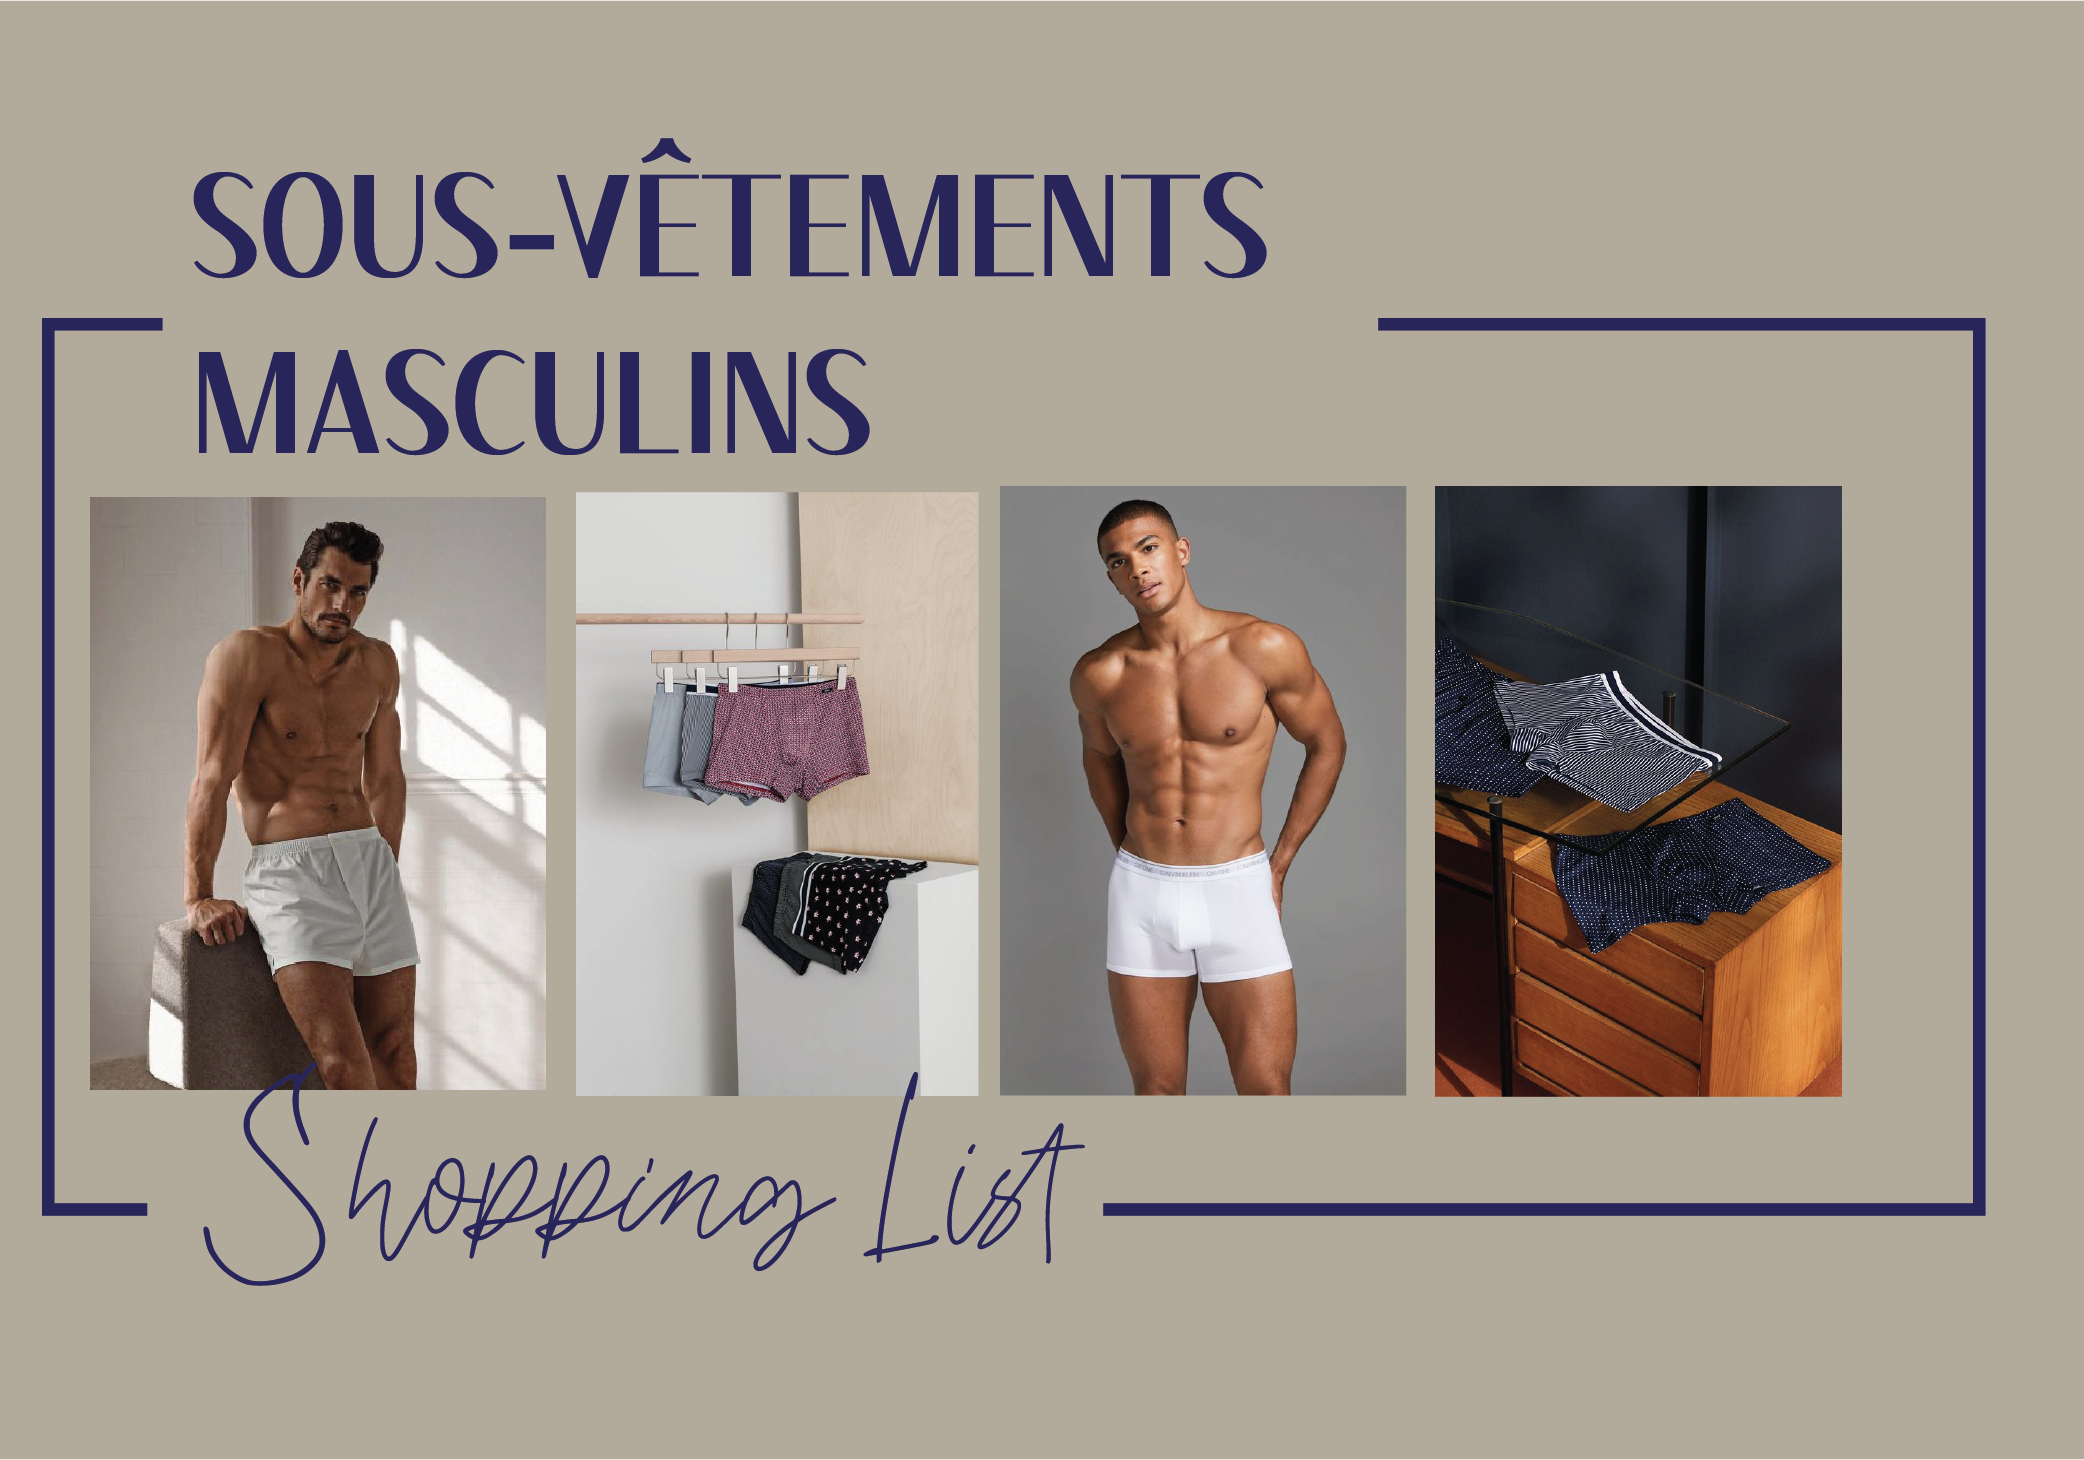 #Shopping List sous-vêtements masculins